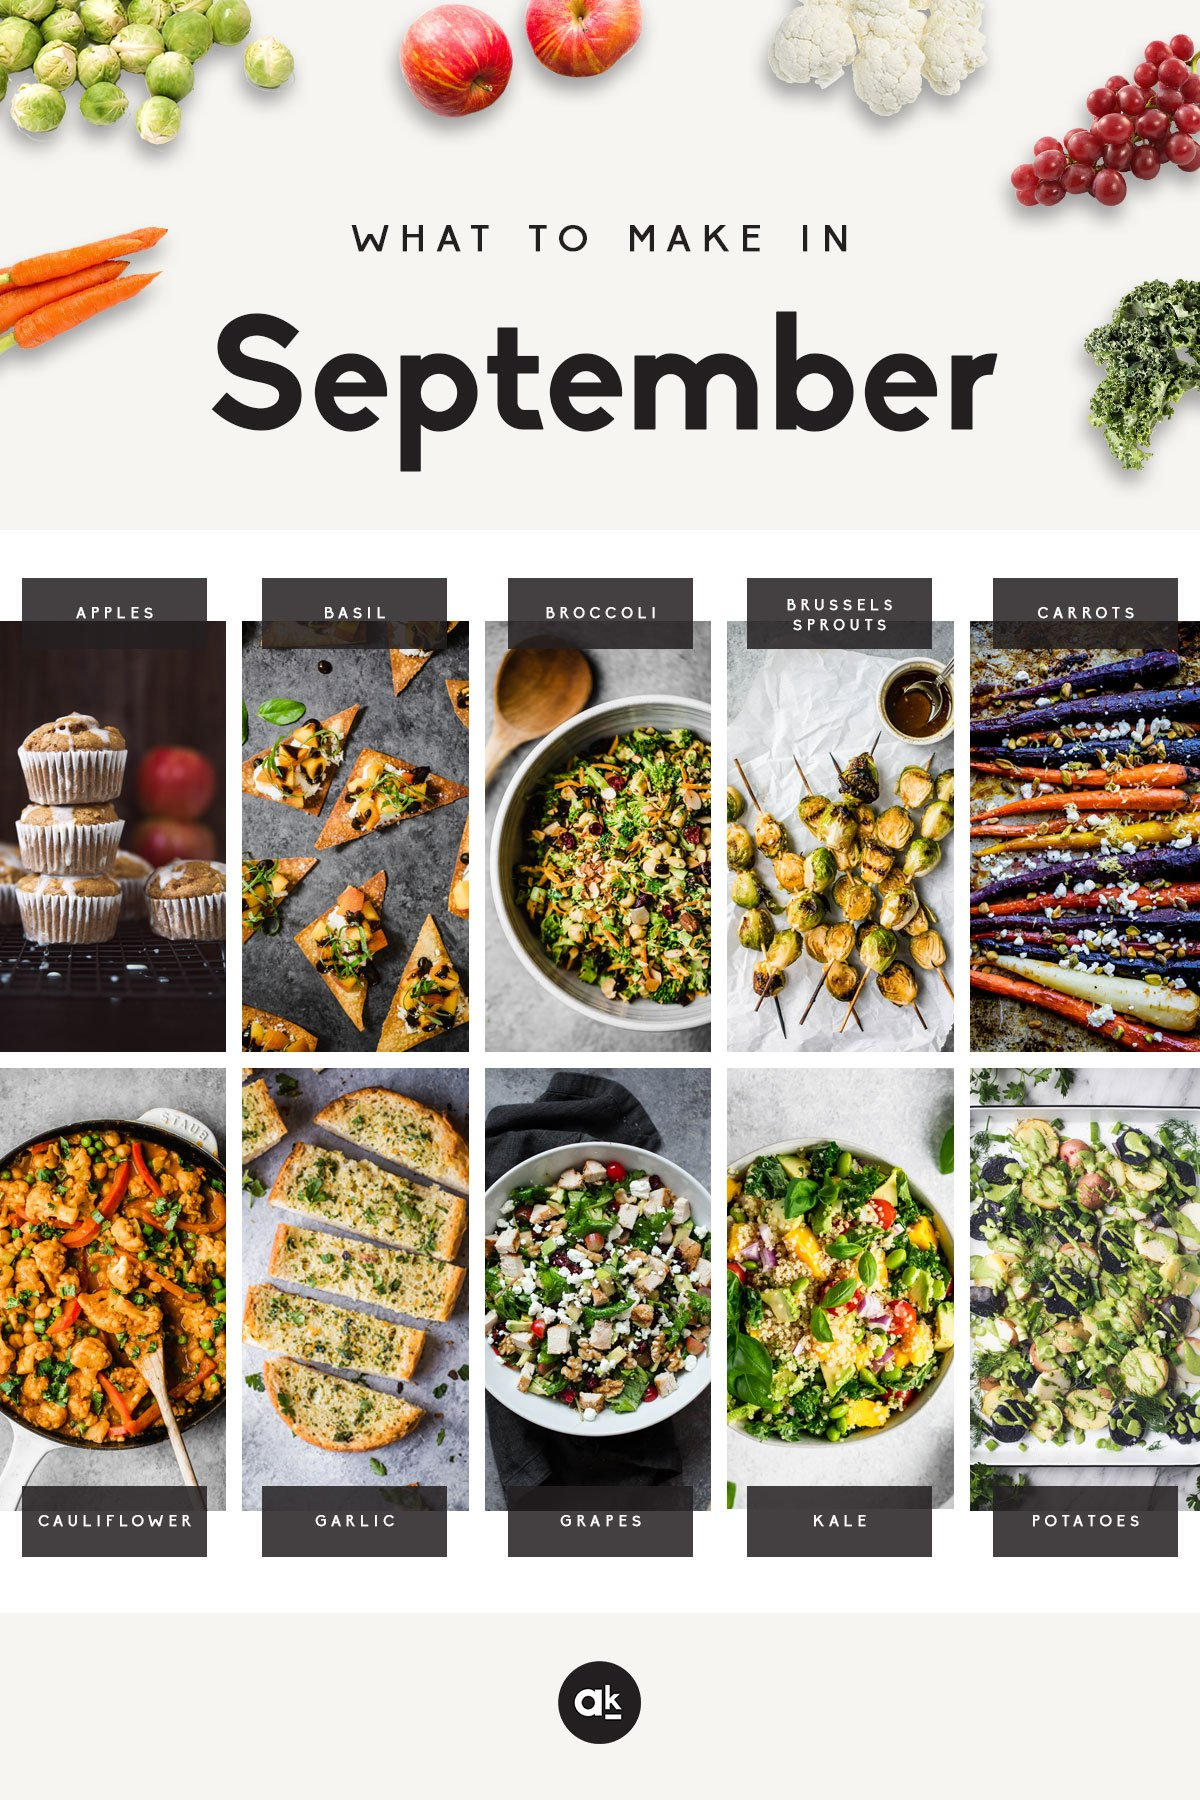 30 incredible, seasonal recipes to make in September! Enjoy a new recipe each day this month, and celebrate delicious produce all month long.